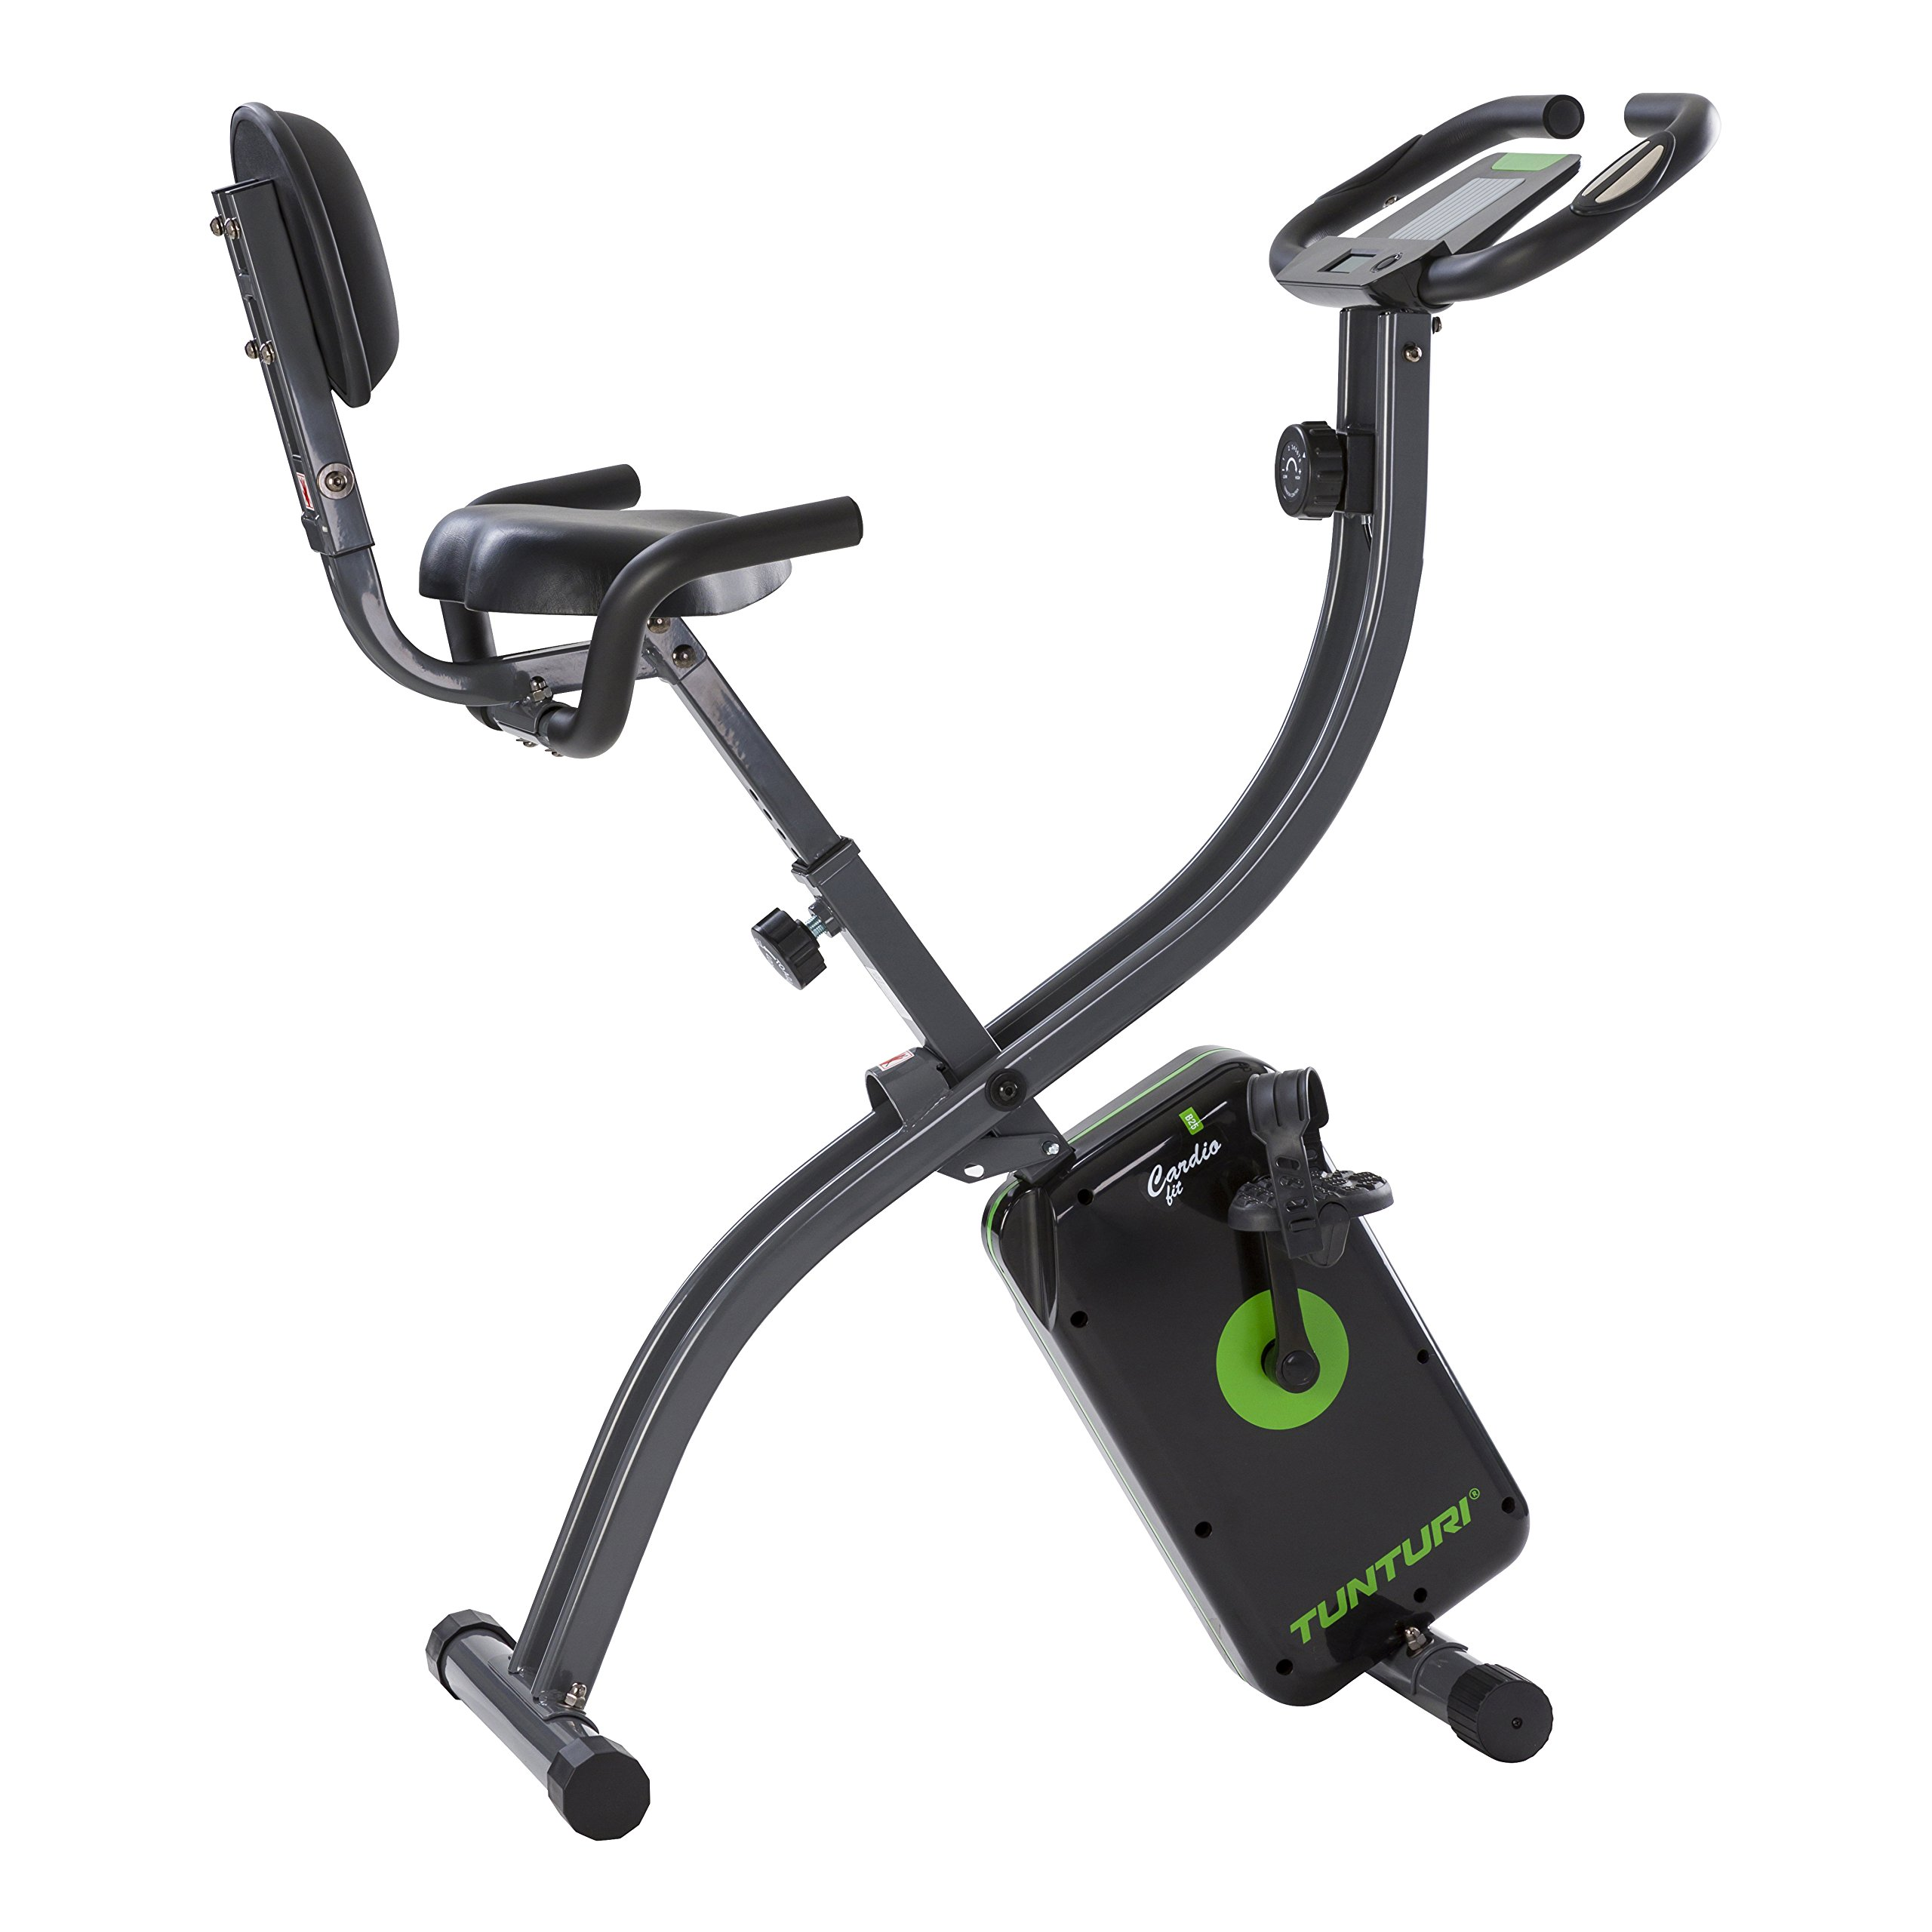 Tunturi Cardio Fit B20/B25 X bike folding Exercise bike / home trainer -  with tablet holder - with/without backrest